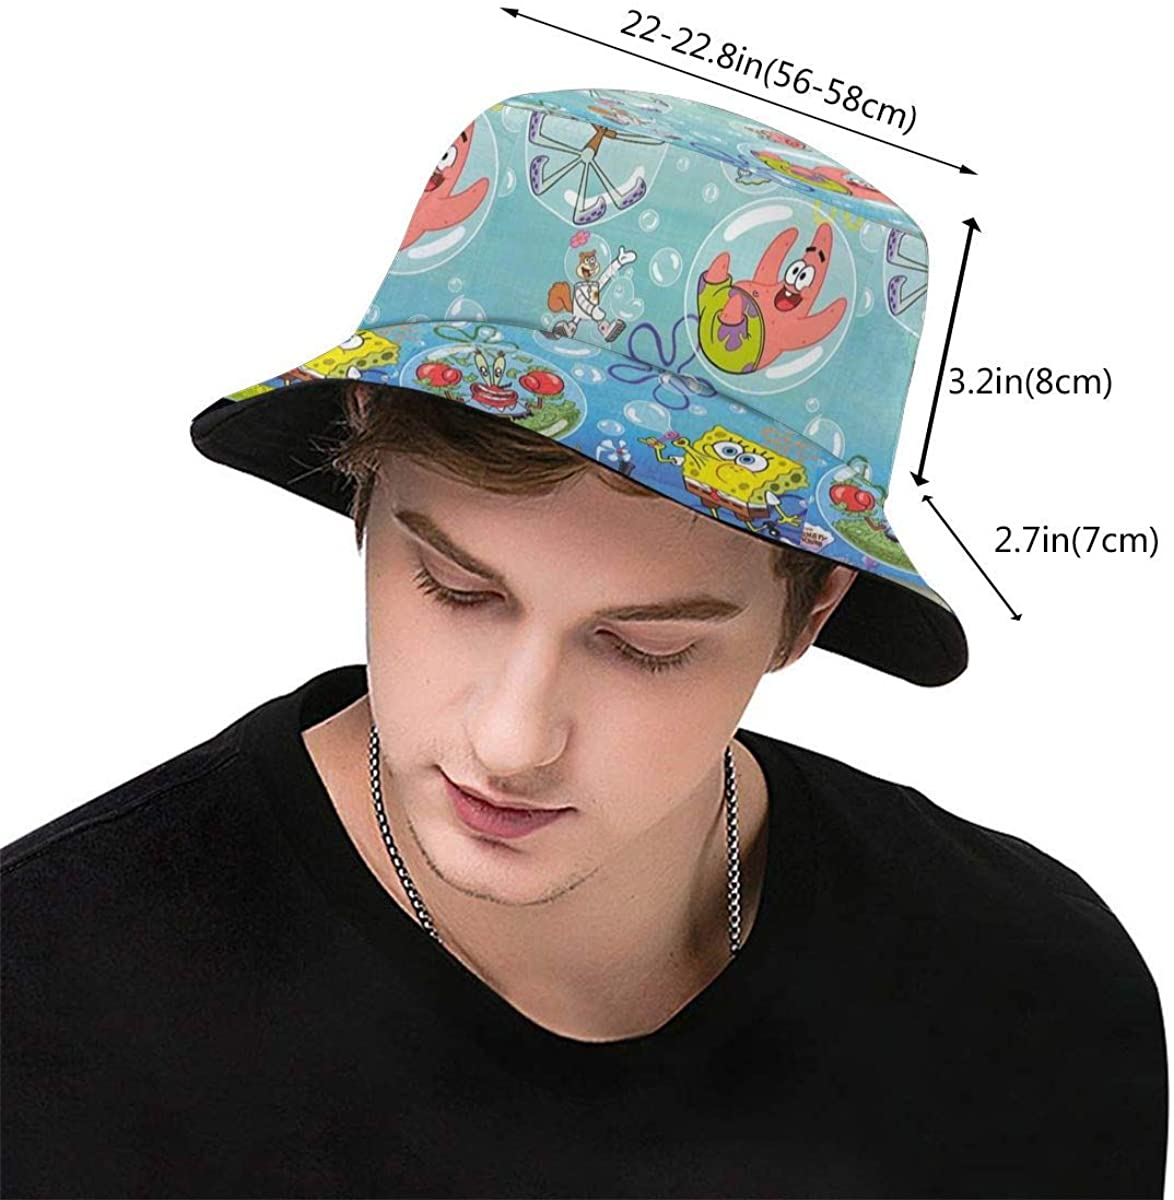 Lbbbb Spongebob Squarepants Art Print Fisherman's Hat - Unisex Summer Outdoor Hunting Fishing Safari Travel Bucket Sun Hat